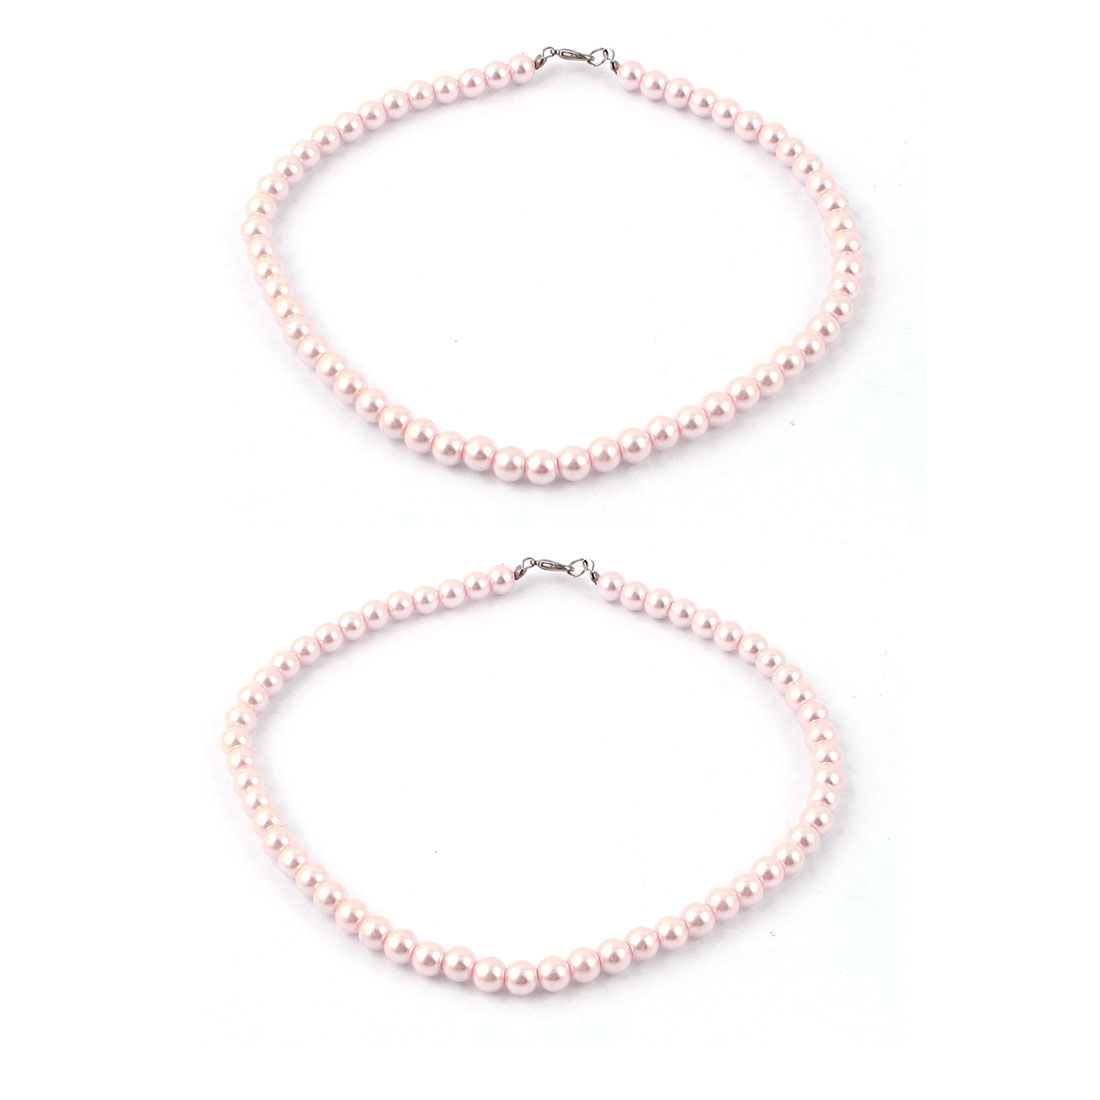 Ladies Single Strap Imitation Pearl Necklace Costume Jewlery 2pcs Pink